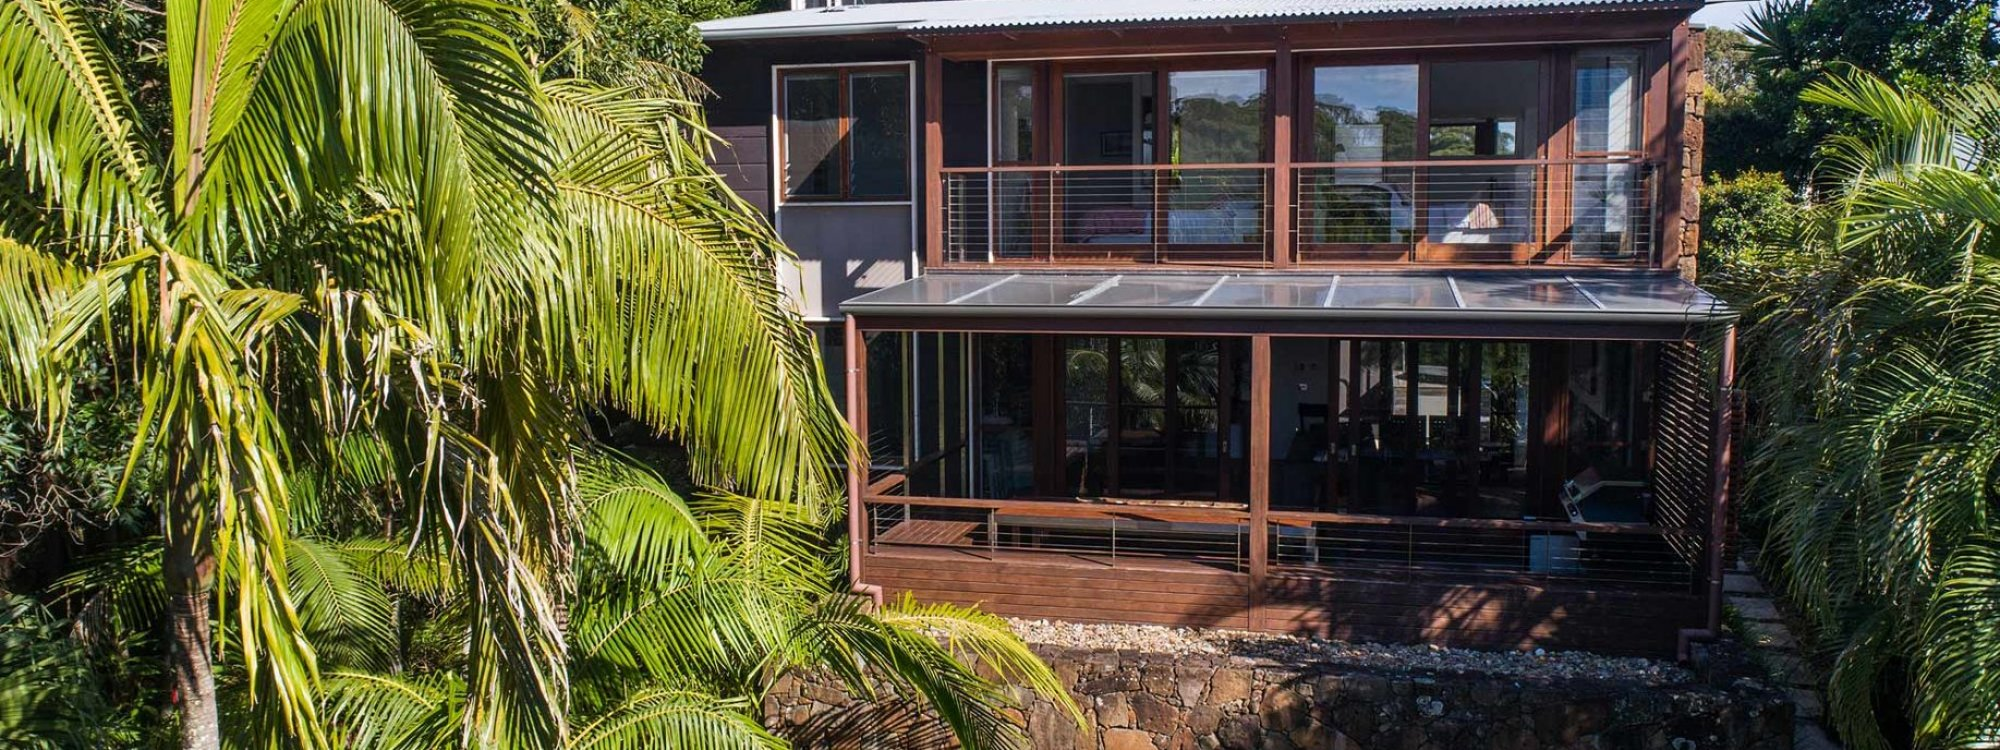 Ayana Byron Bay - front of house by day